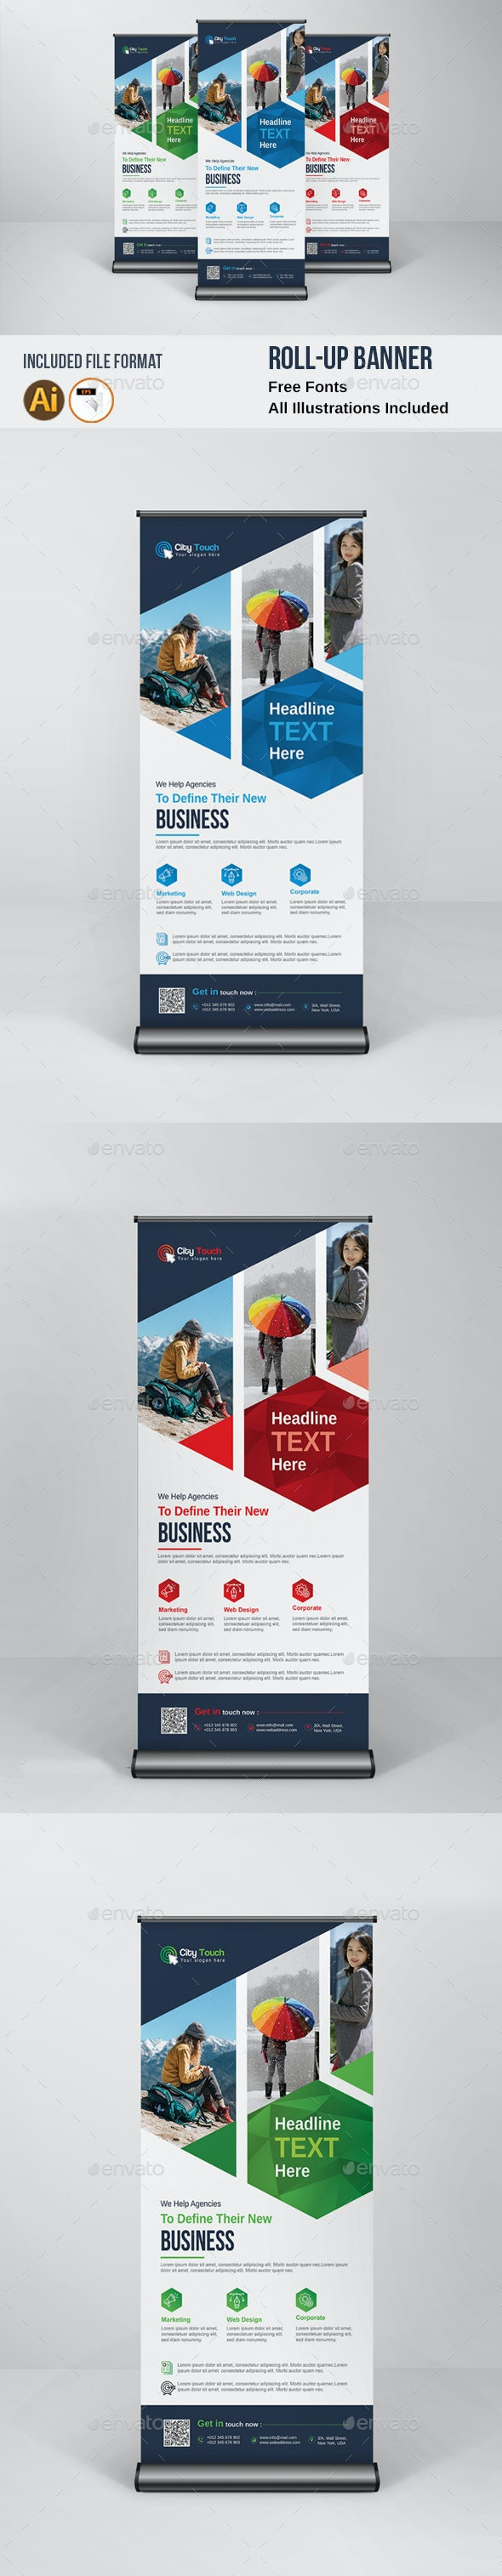 Roll-Up Banner - Print Templates